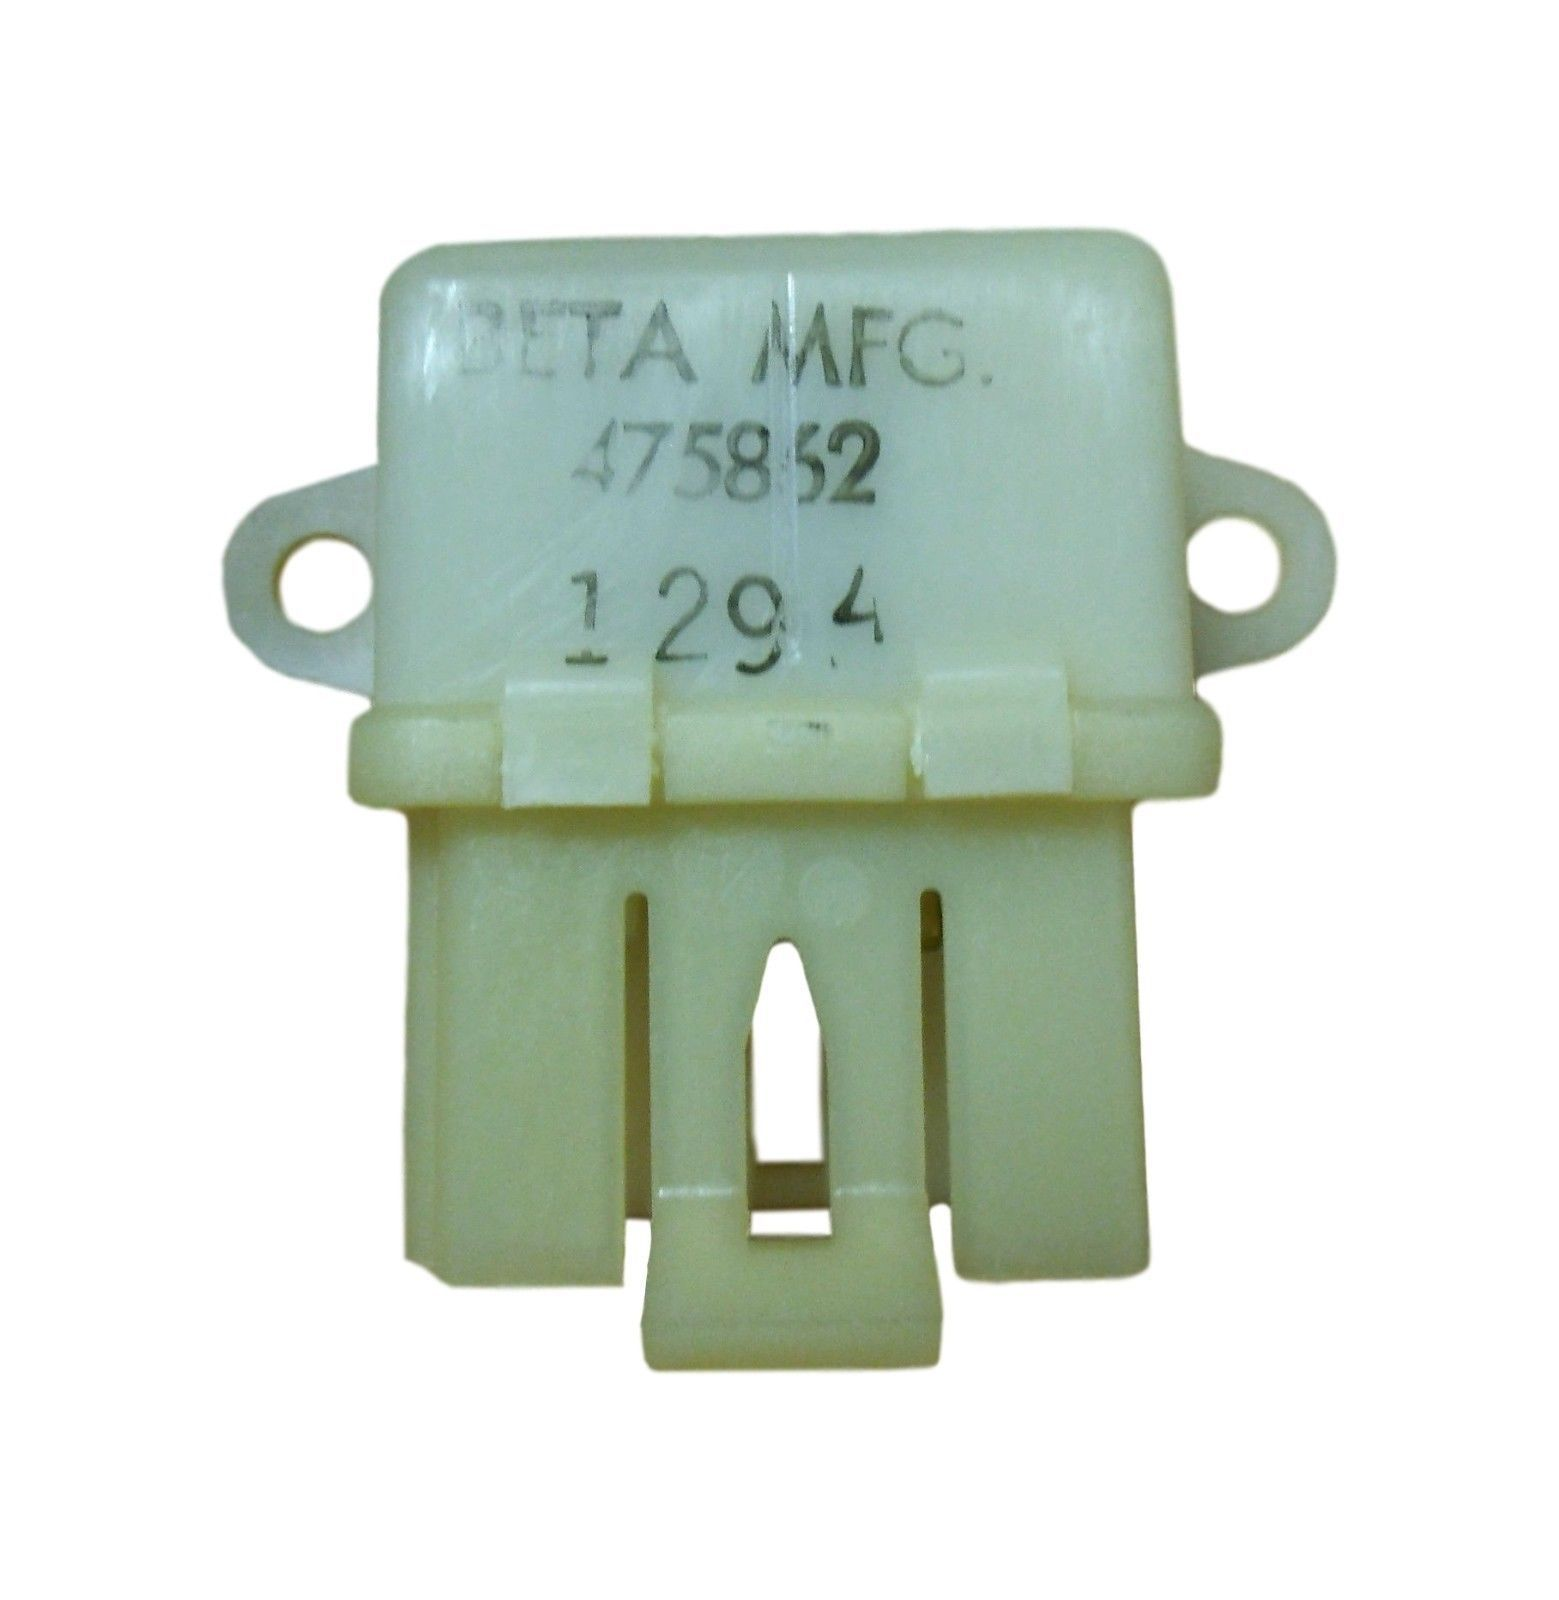 Temp Guard 475862 1294 A/C Relay Switch and 50 similar items